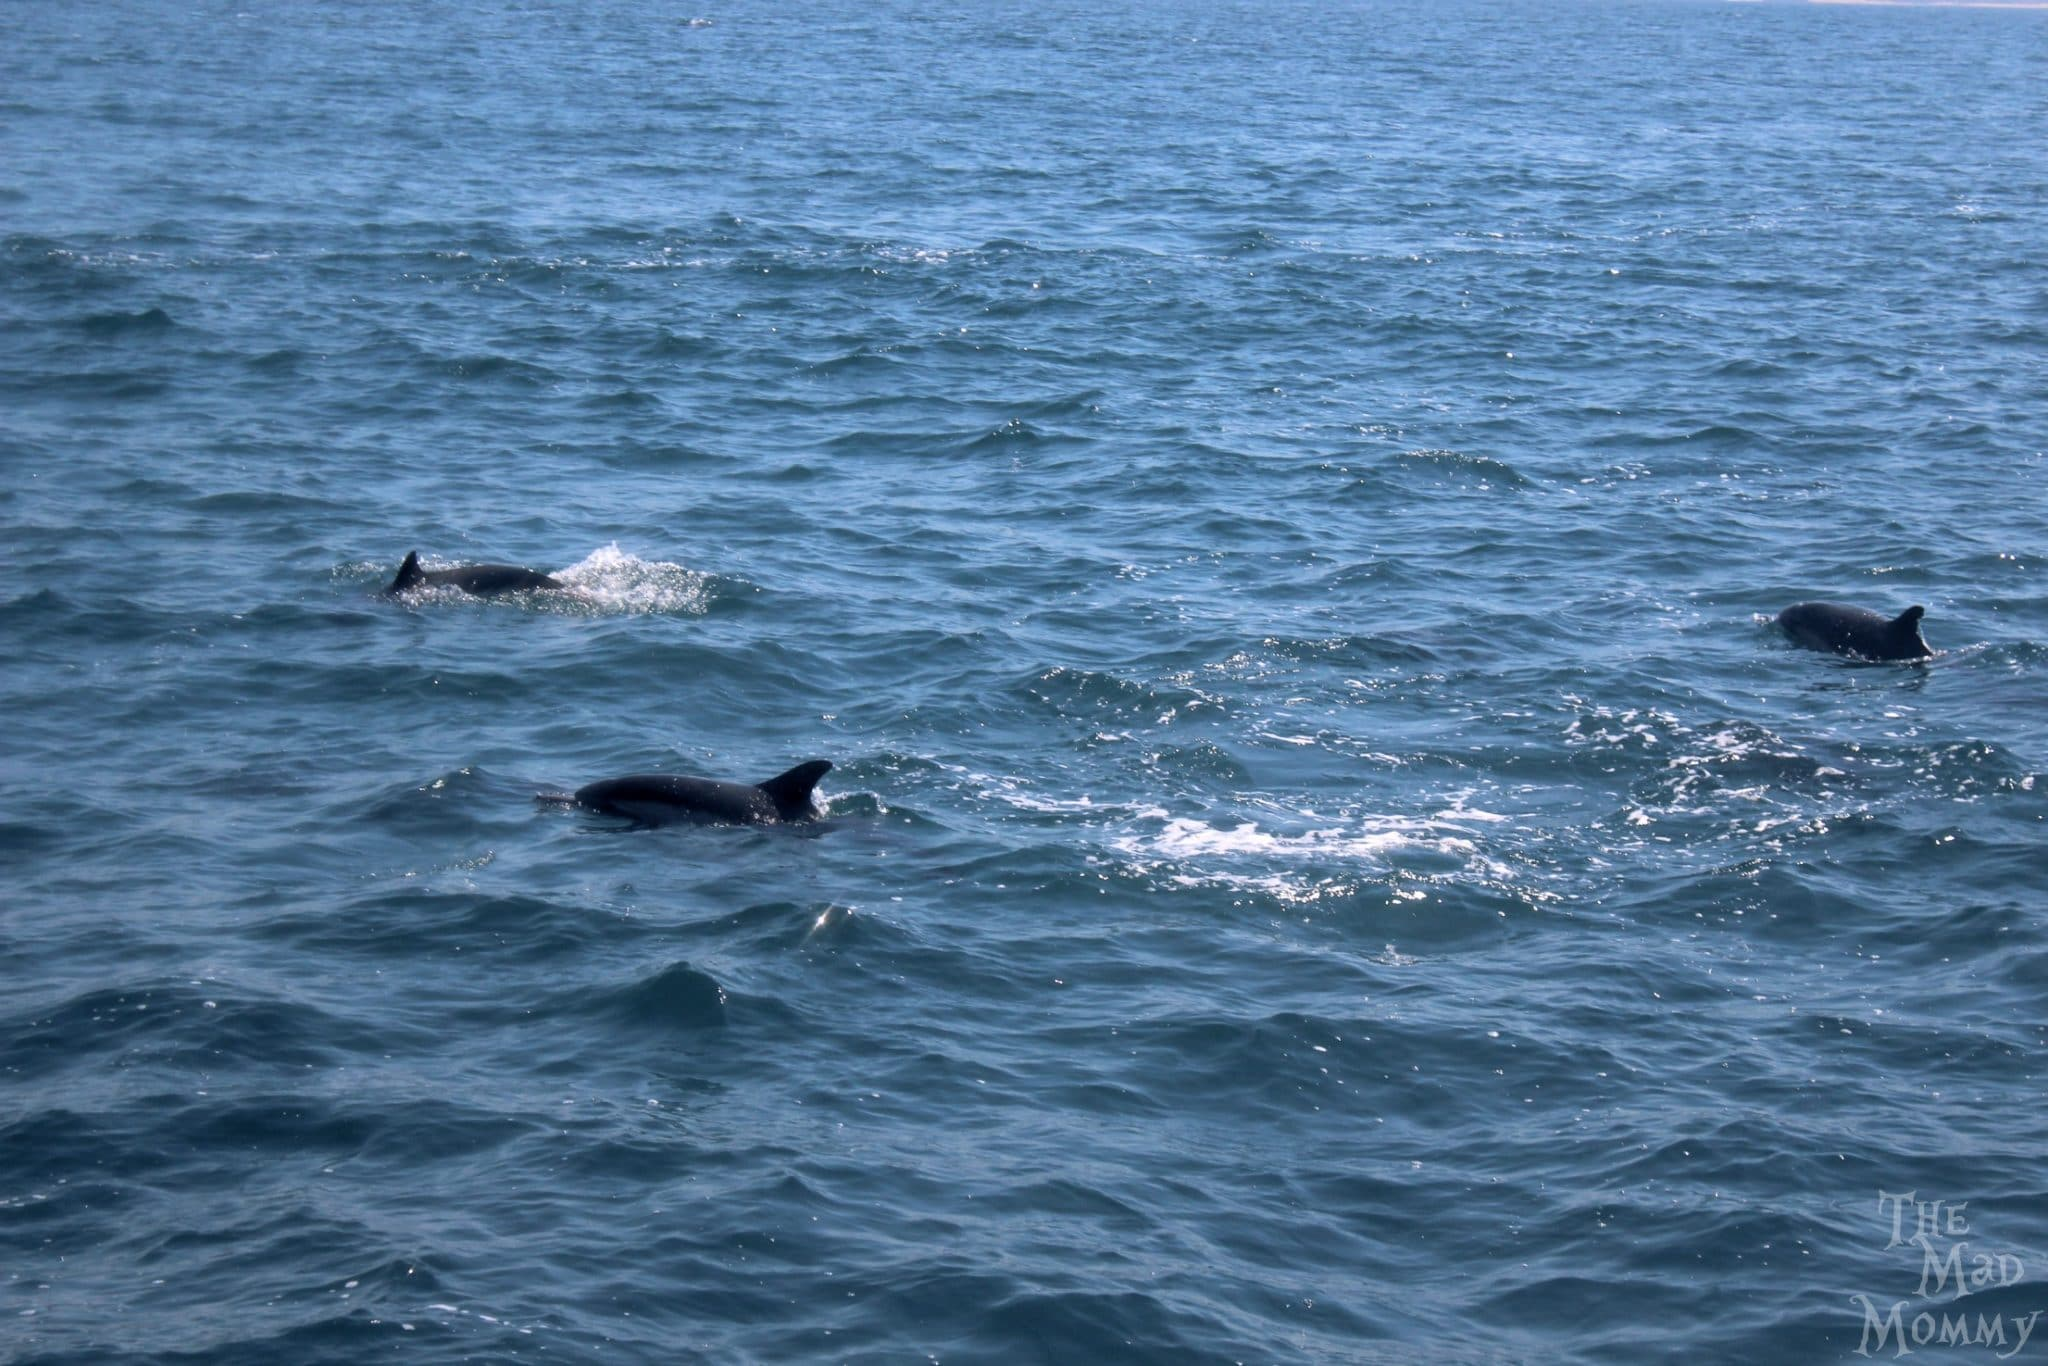 Getting closer to the dolphins.